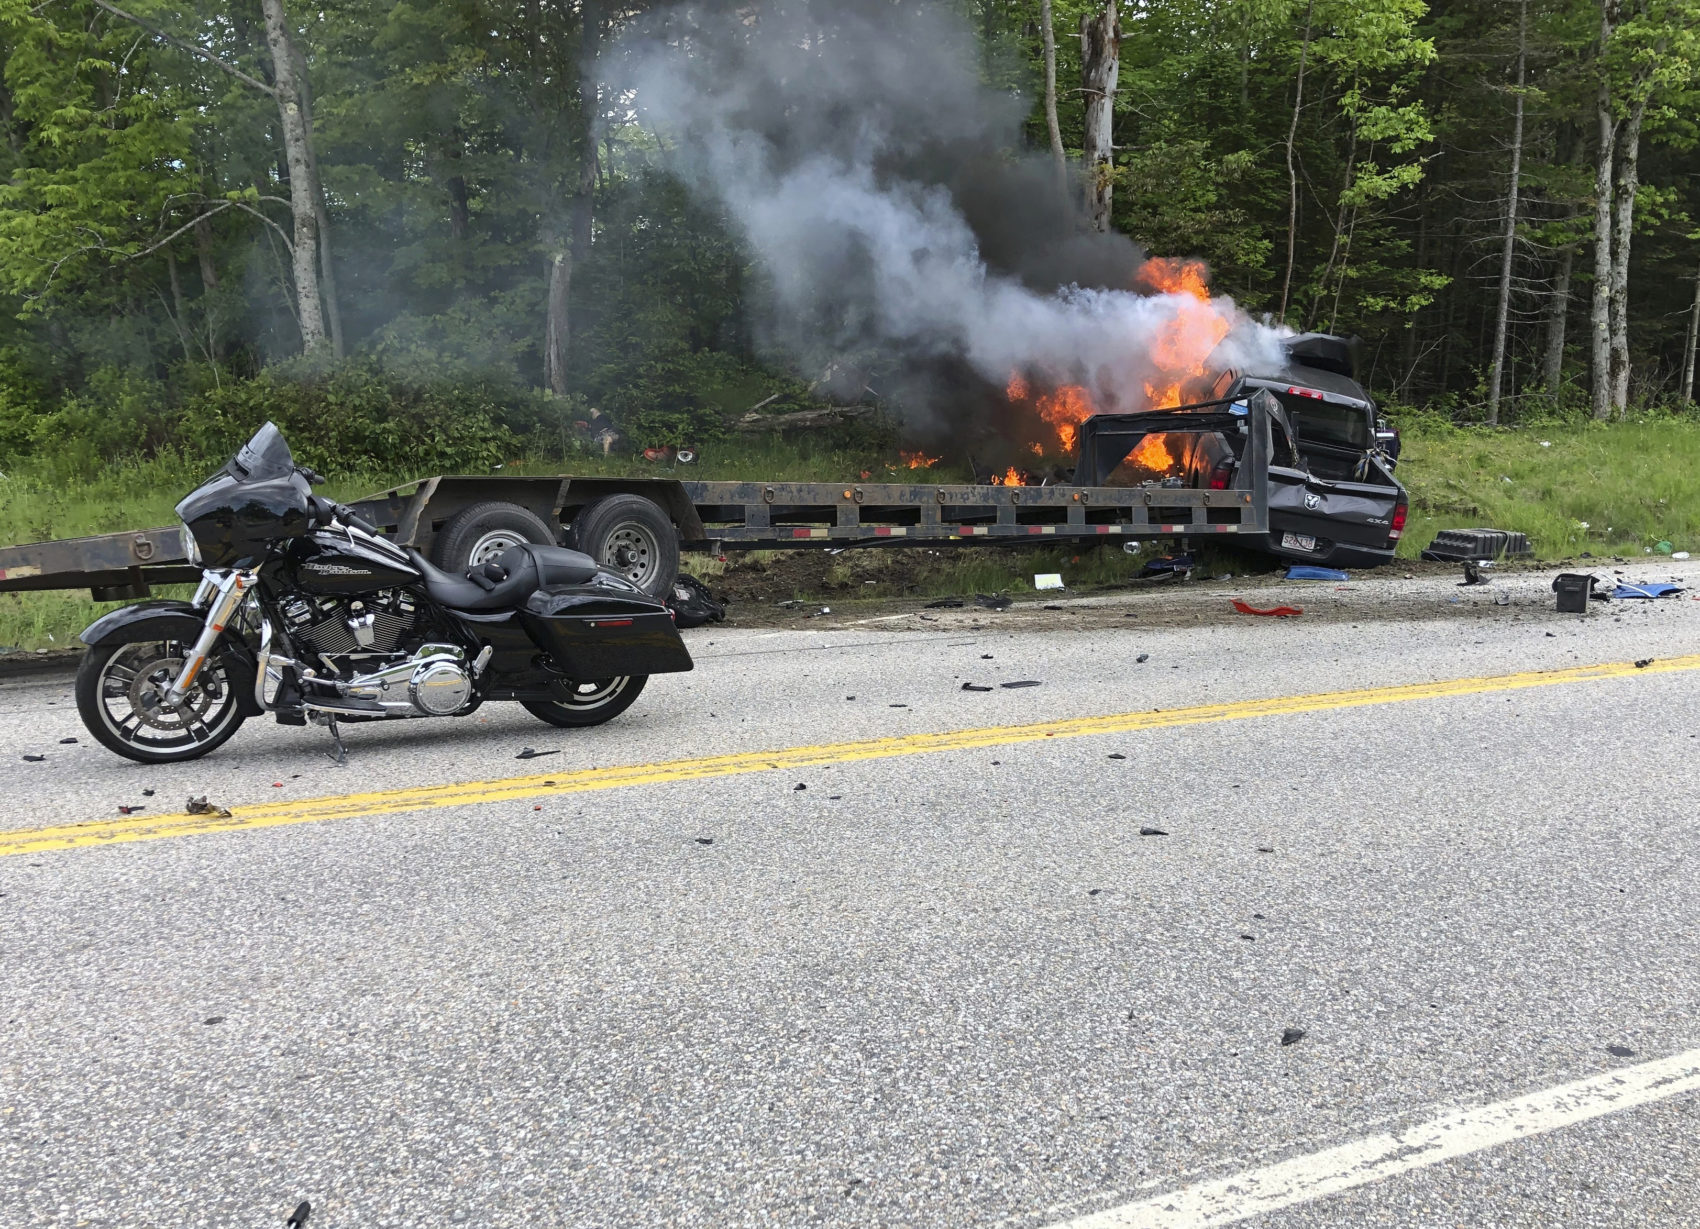 Victims Of N H  Motorcycle Crash Identified, Truck Driver's